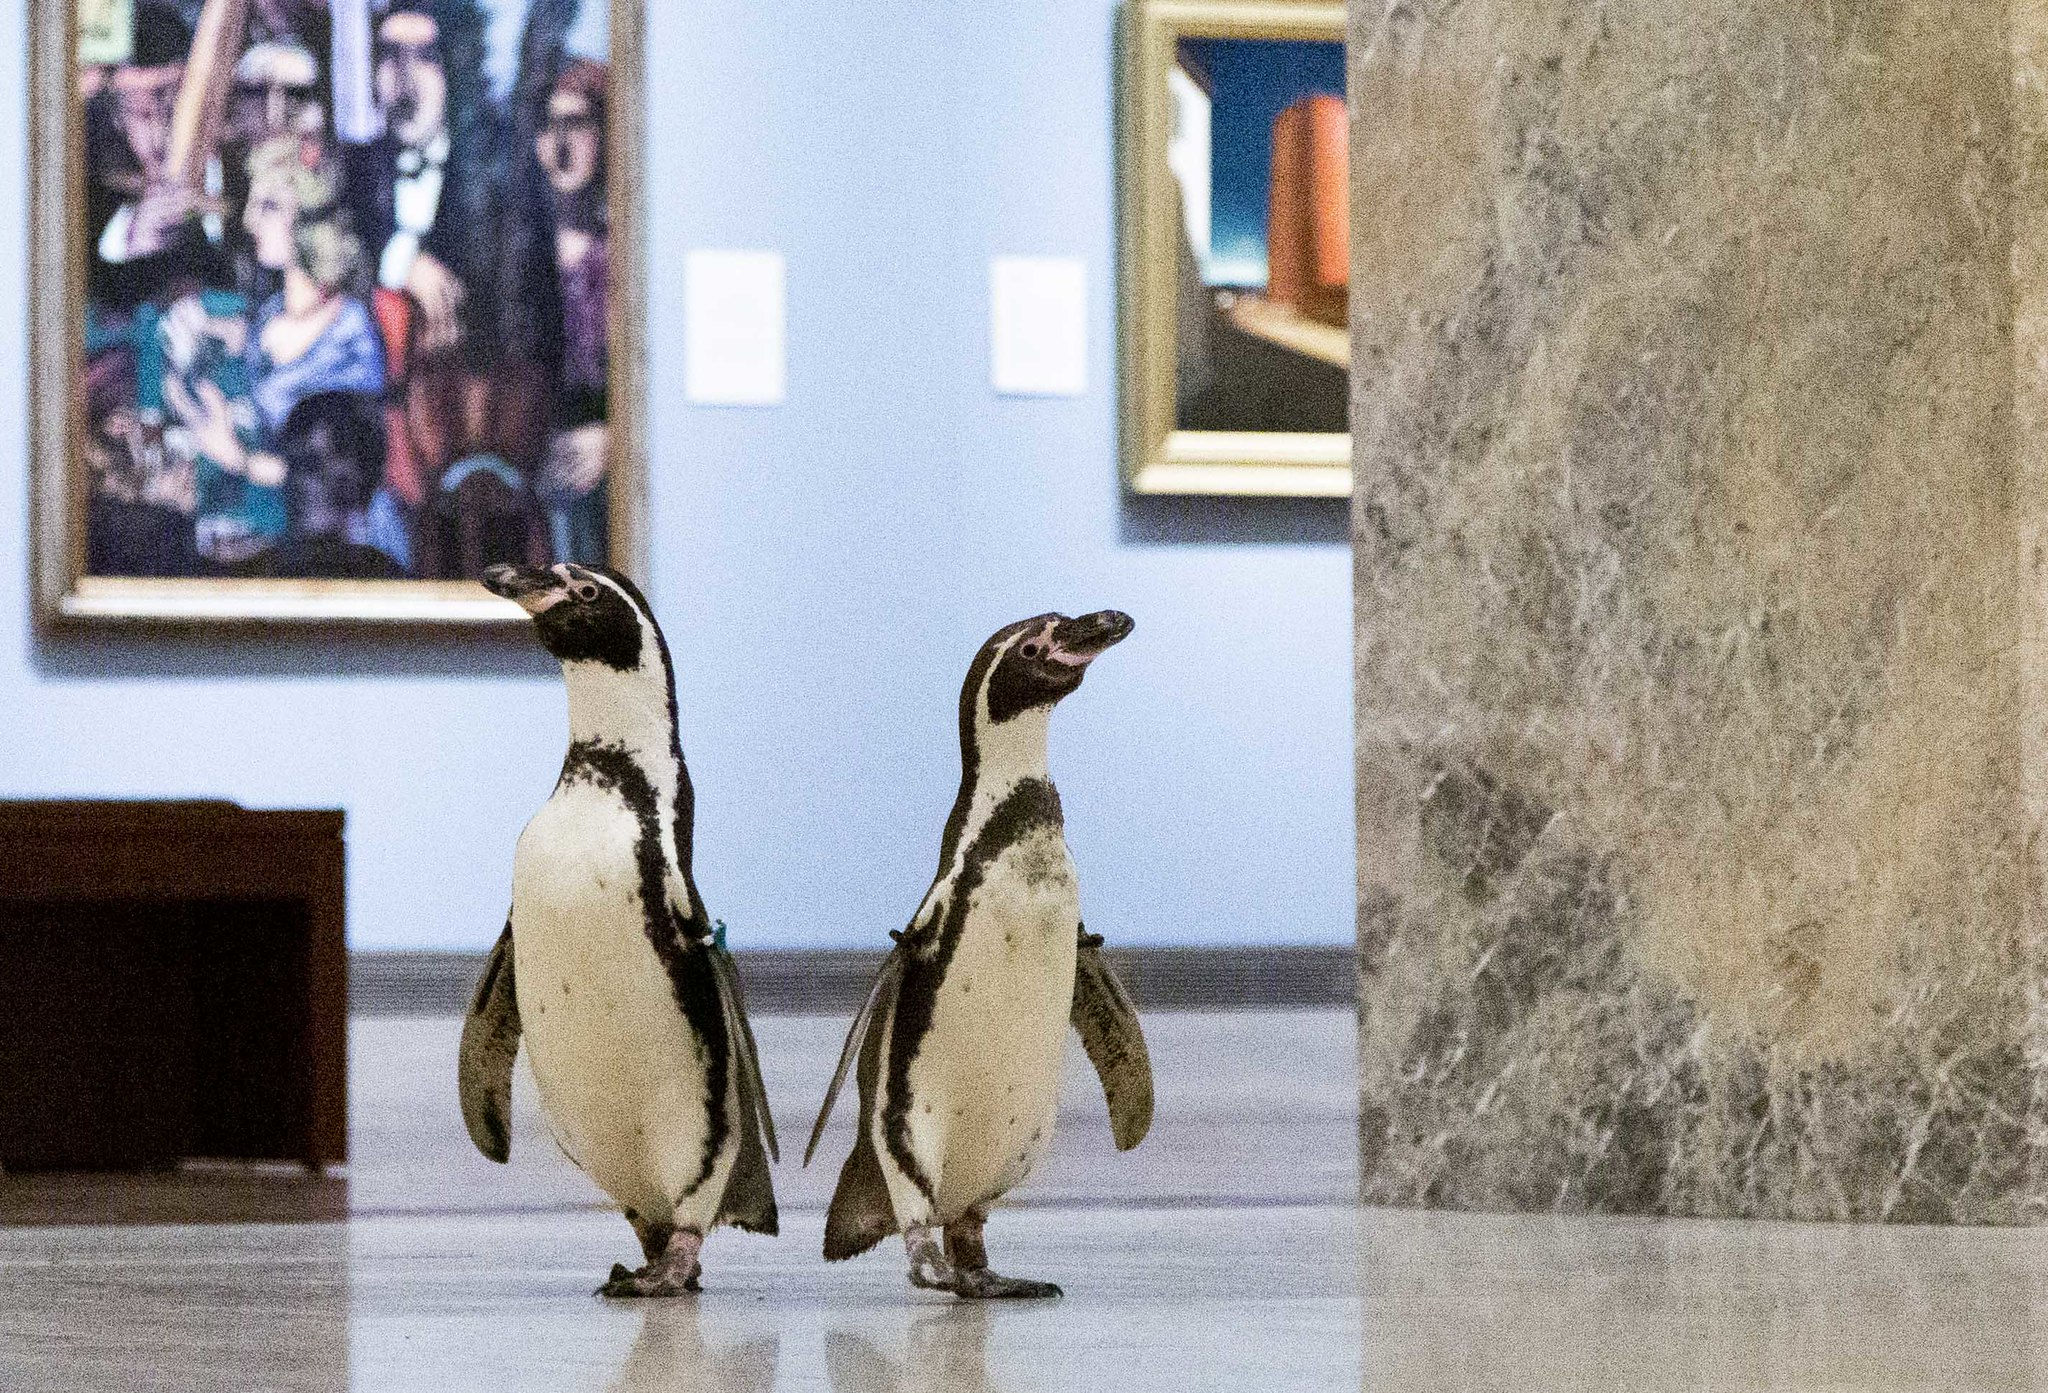 Penguins from the Kansas City Zoo explore the museum during the pandemic shutdown, May 6 at The Nelson-Atkins Museum of Art in Kansas City, MO.